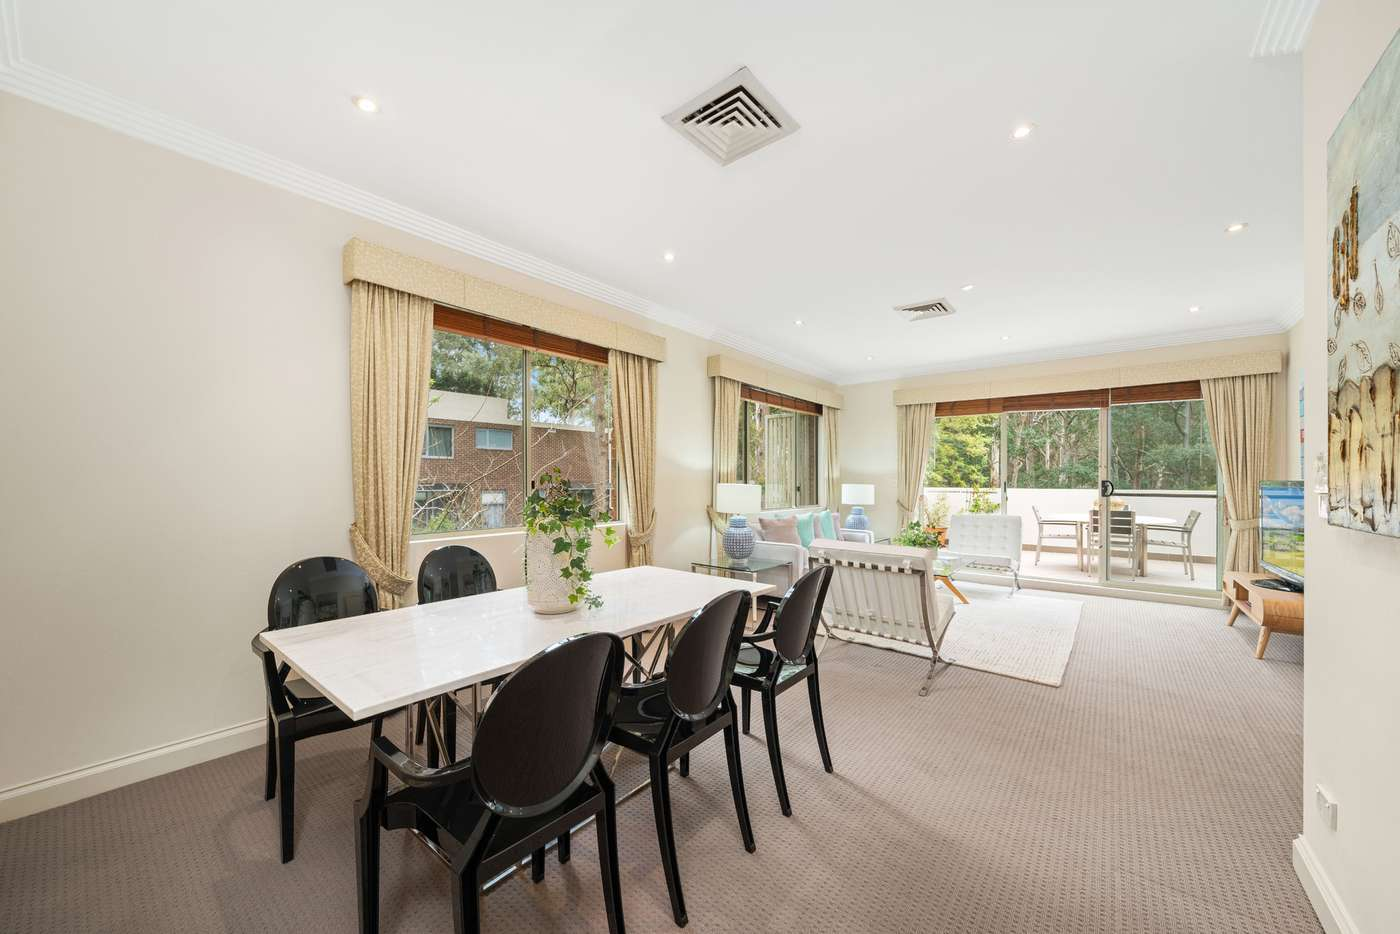 Fifth view of Homely apartment listing, 15/125-127 Mona Vale Road, St Ives NSW 2075